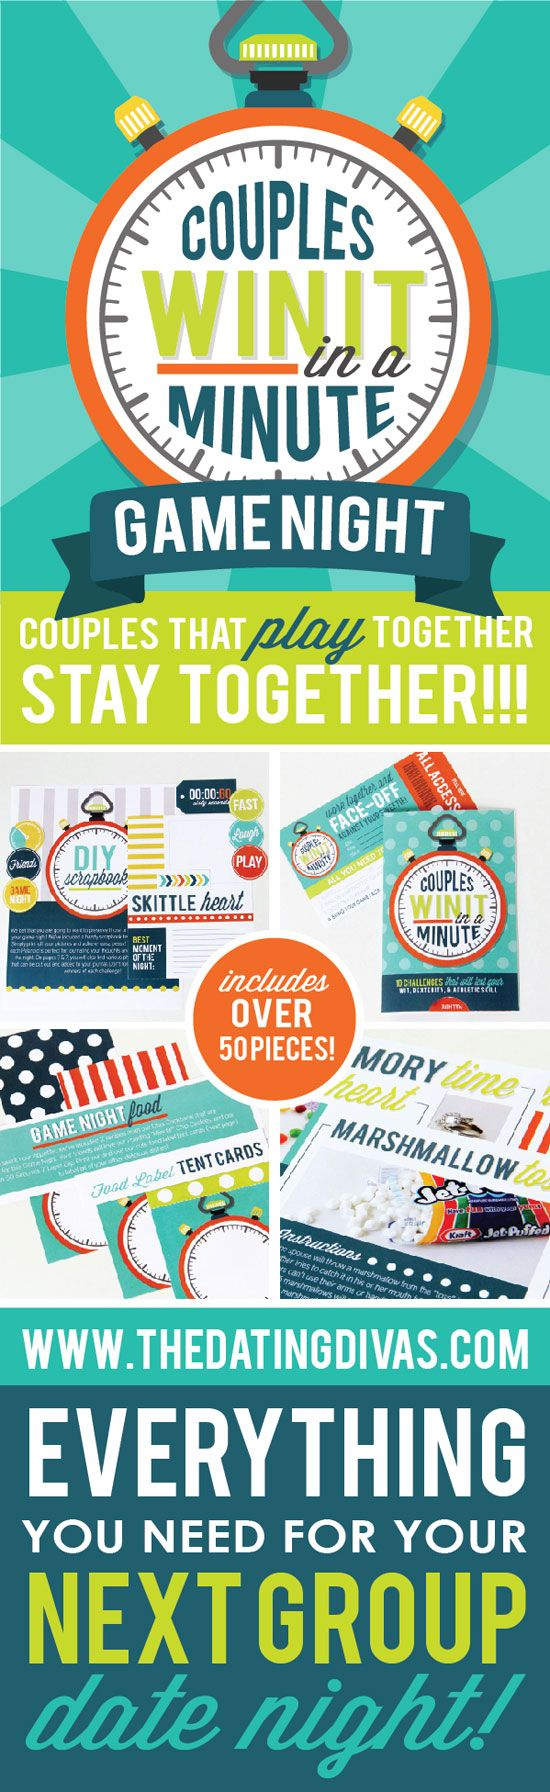 Love this couples game night idea- the date night challenges look so fun! www.TheDatingDivas.com